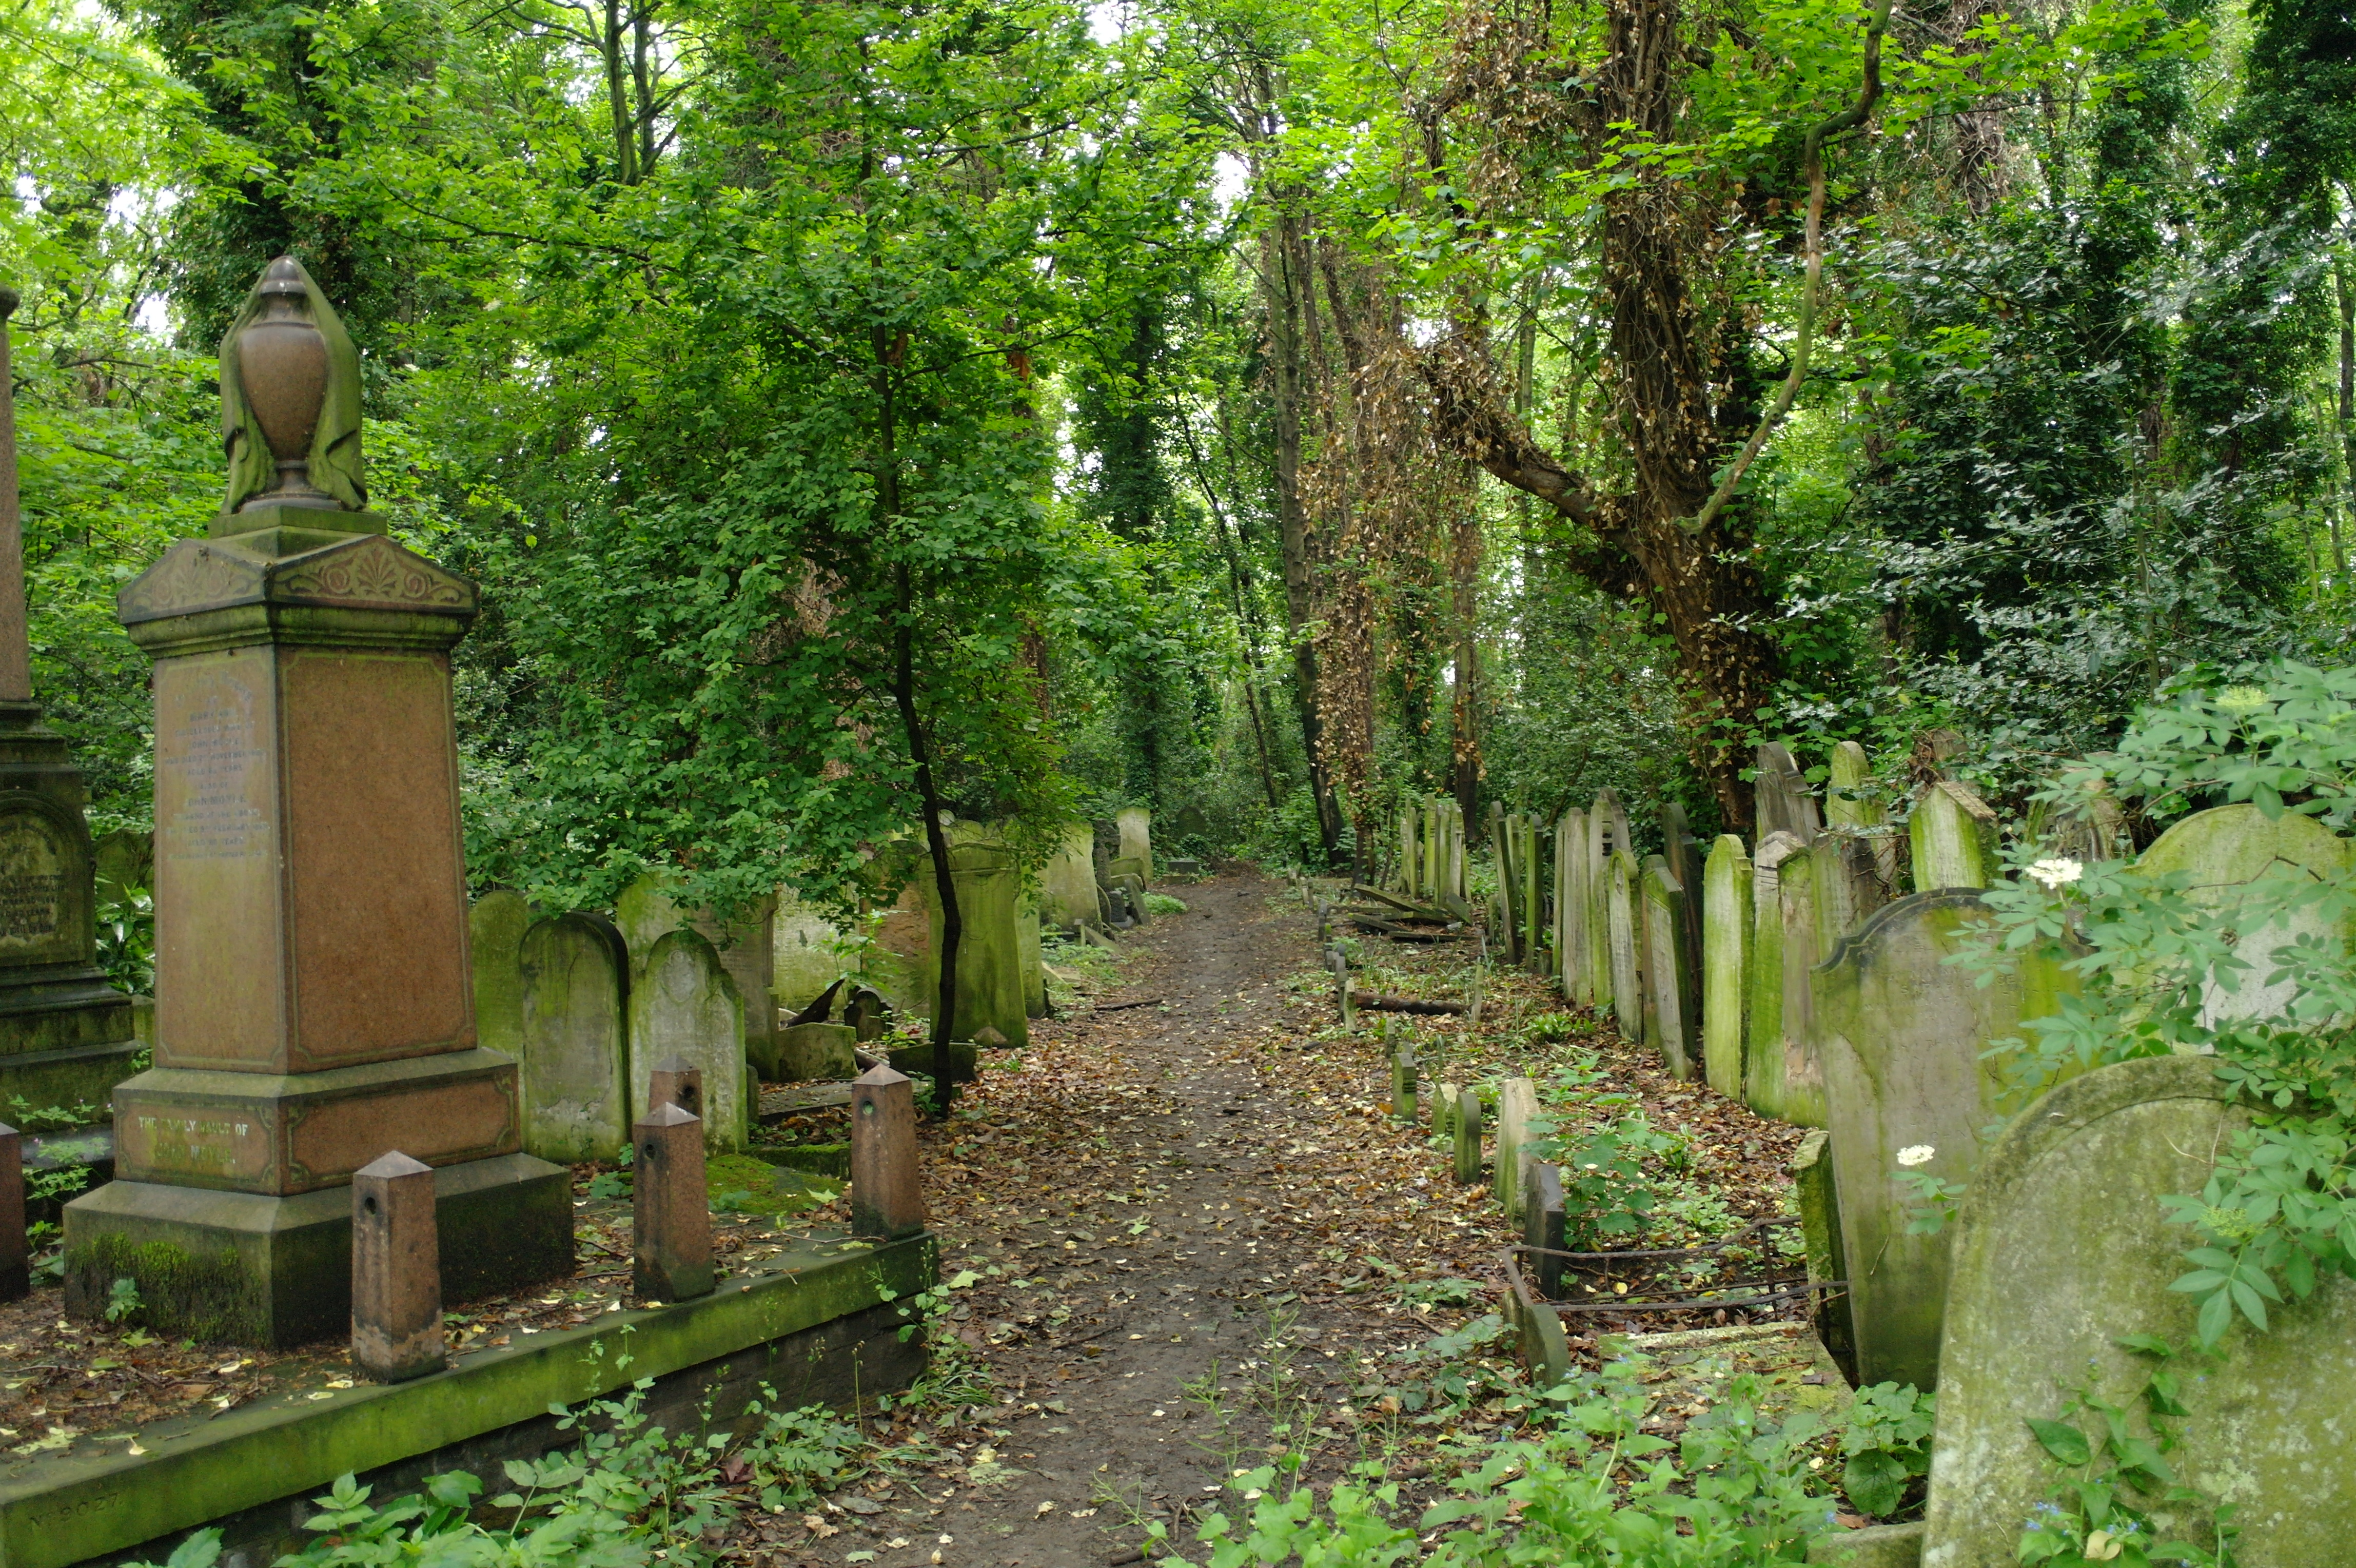 London Cementeries Halloween 2016 Abney Park Creative Commons by martin_vmorris